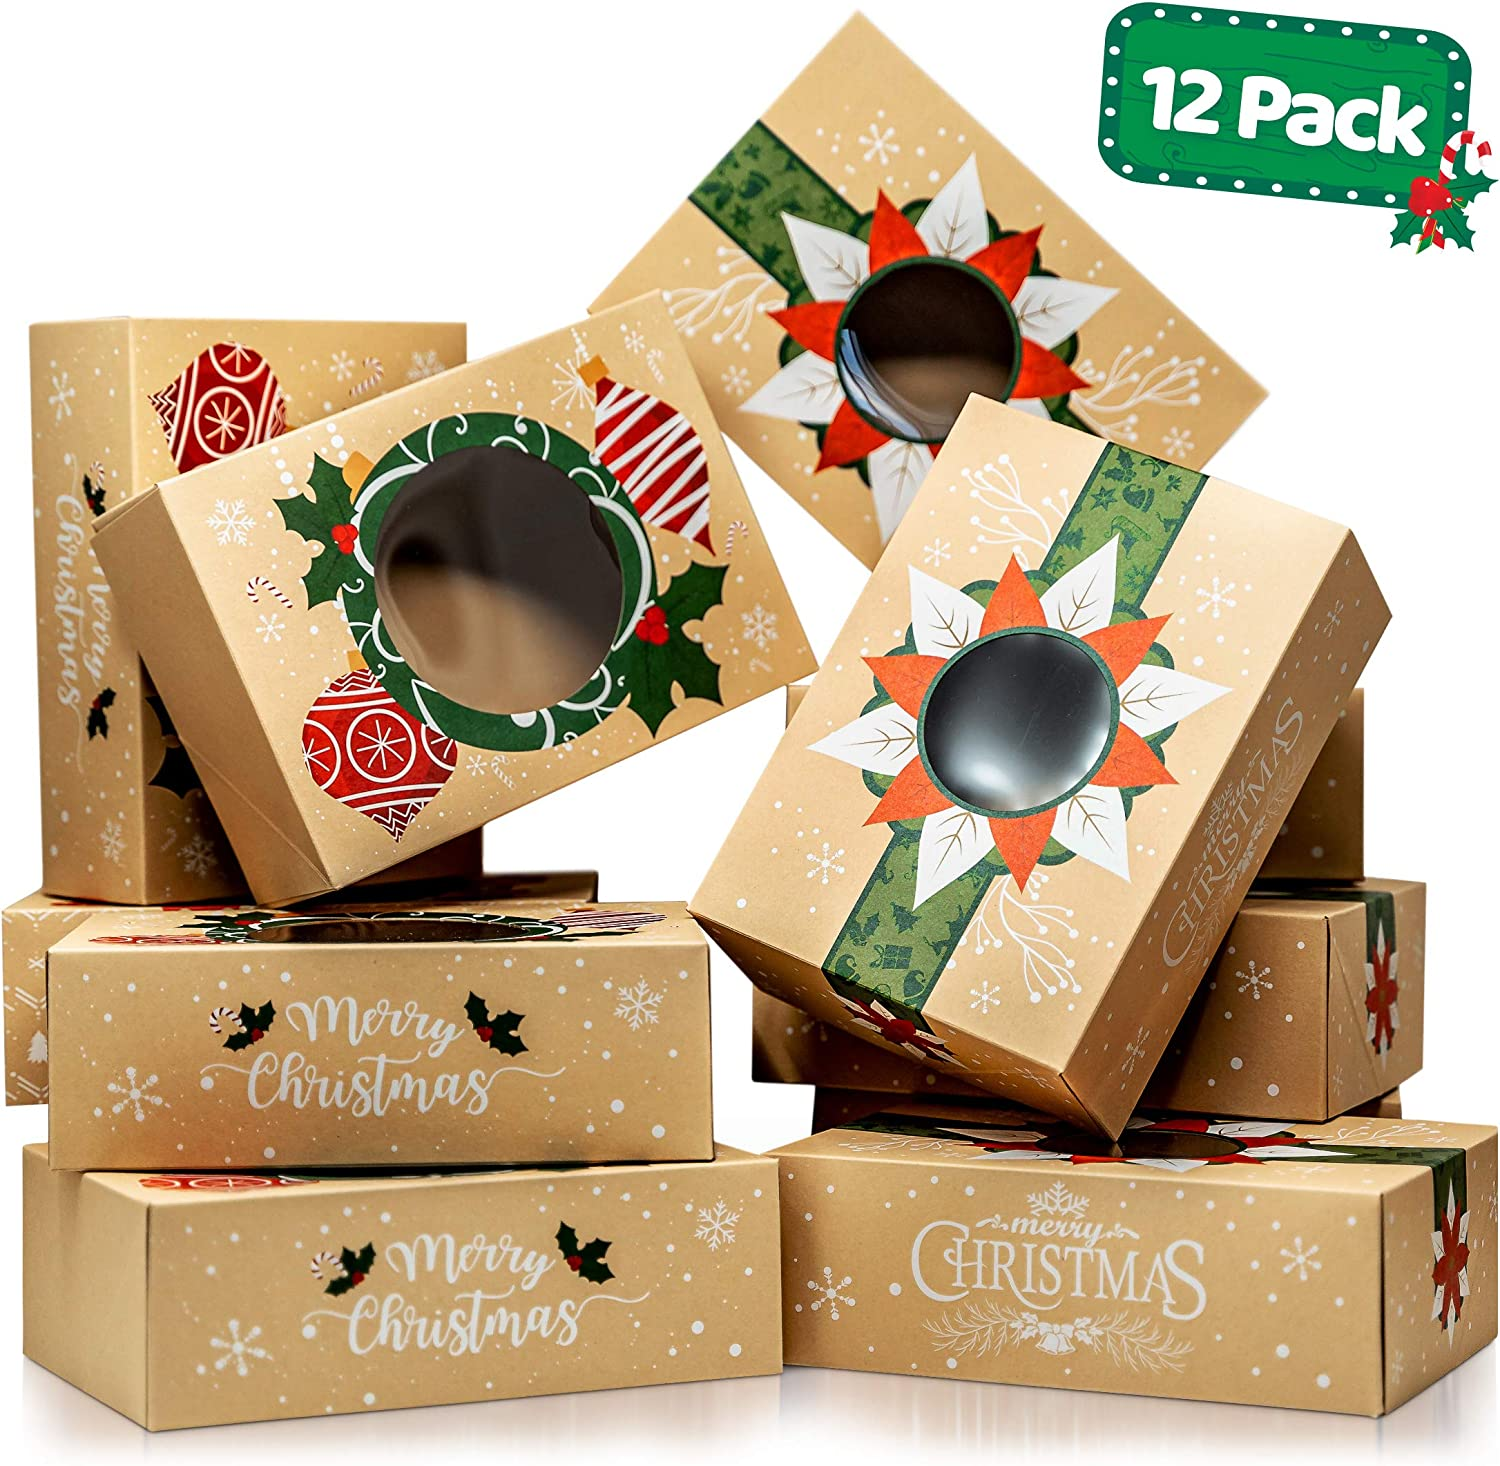 Christmas Cookie Boxes with Window – Bulk 12 Pack Kraft – Large Holiday Christmas Food, Bakery Treat Boxes, Candy and Cookie Boxes for Gift Giving – Kraft Packaging Containers & Tins with Lids